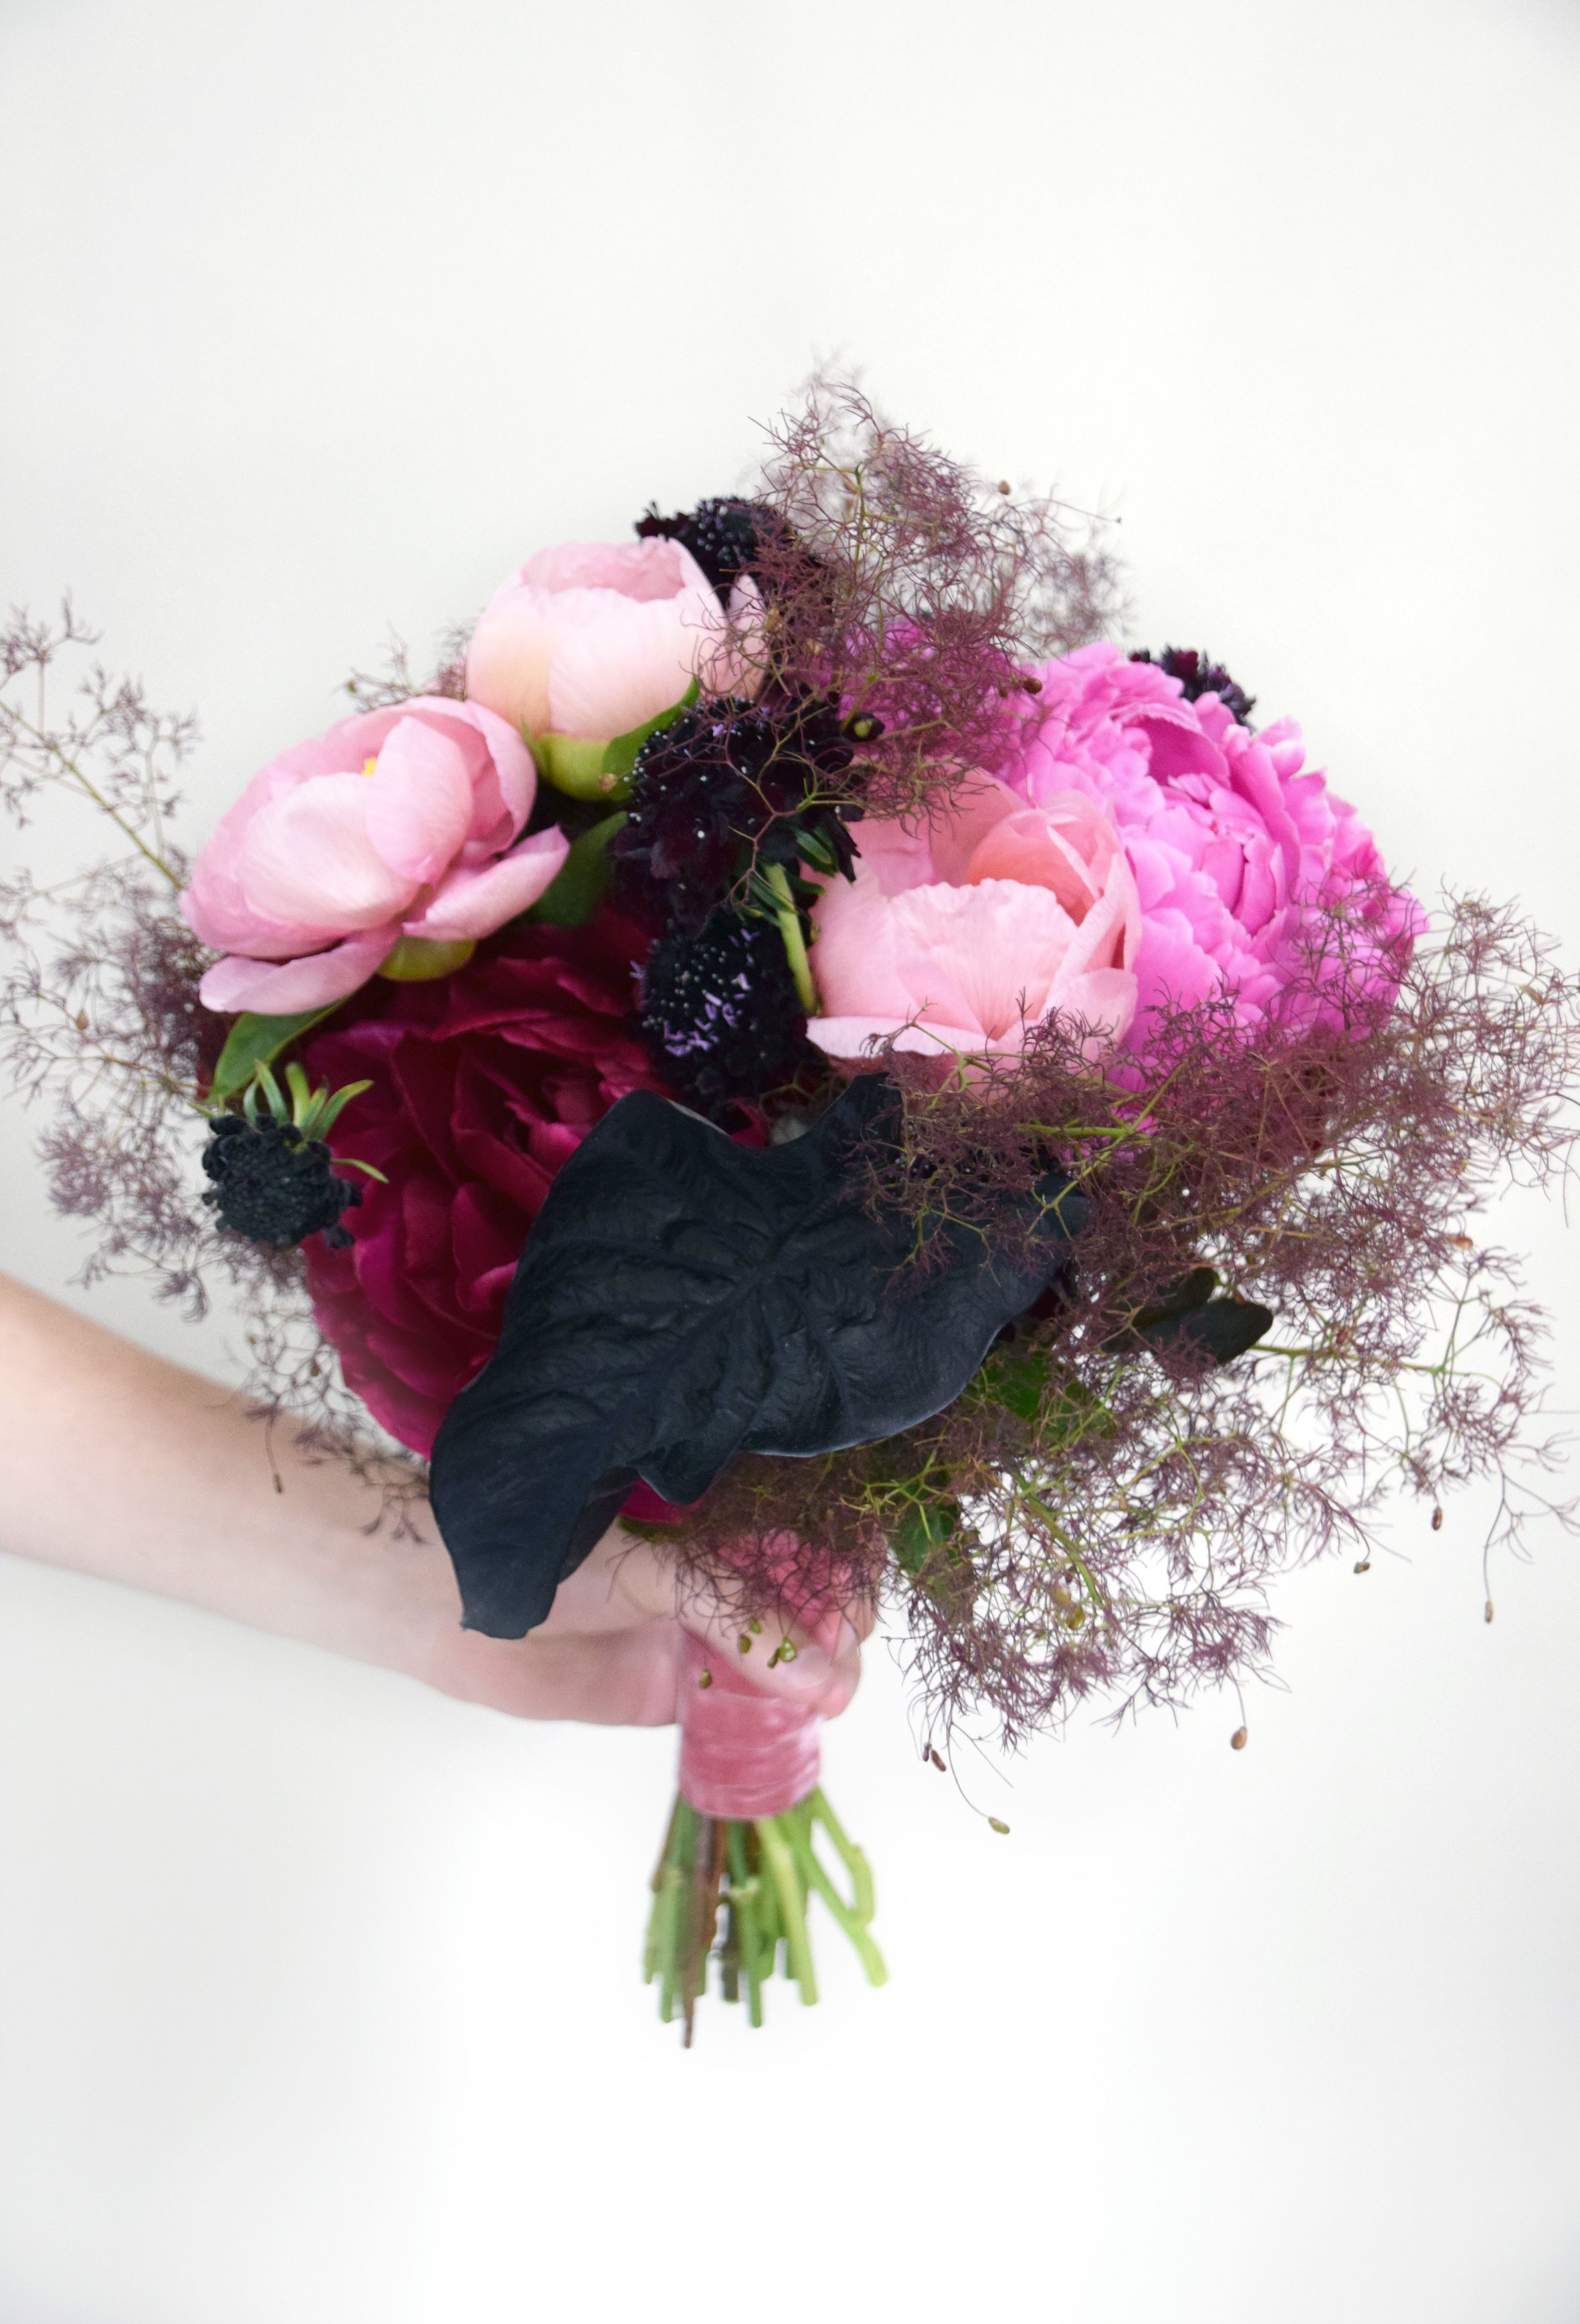 15 fall wedding bouquets best bridal flower ideas for fall weddings izmirmasajfo